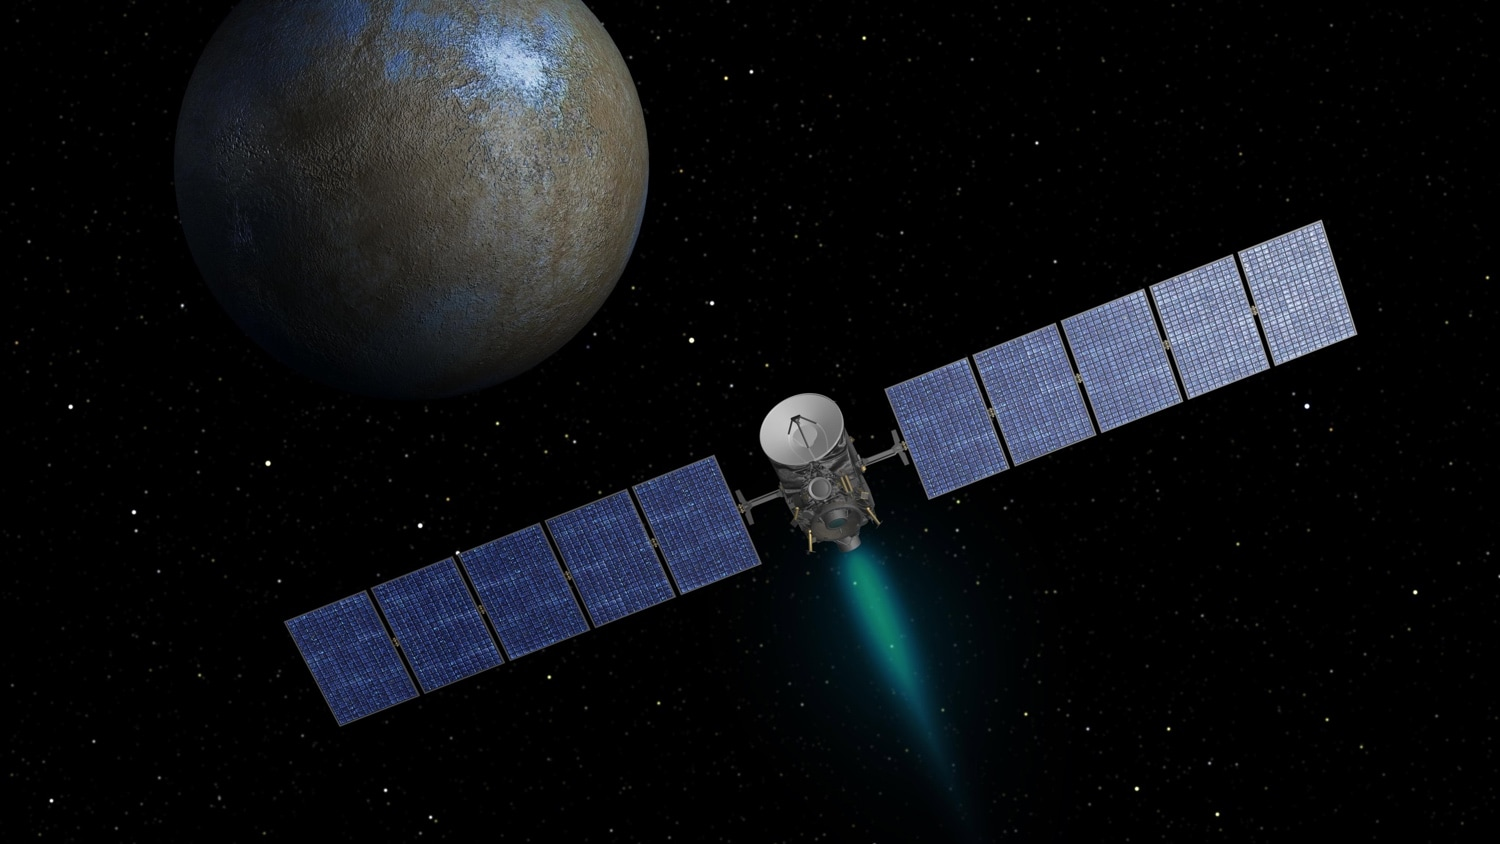 An artist's impression of the Dawn spacecraft at the dawrf planet Ceres.